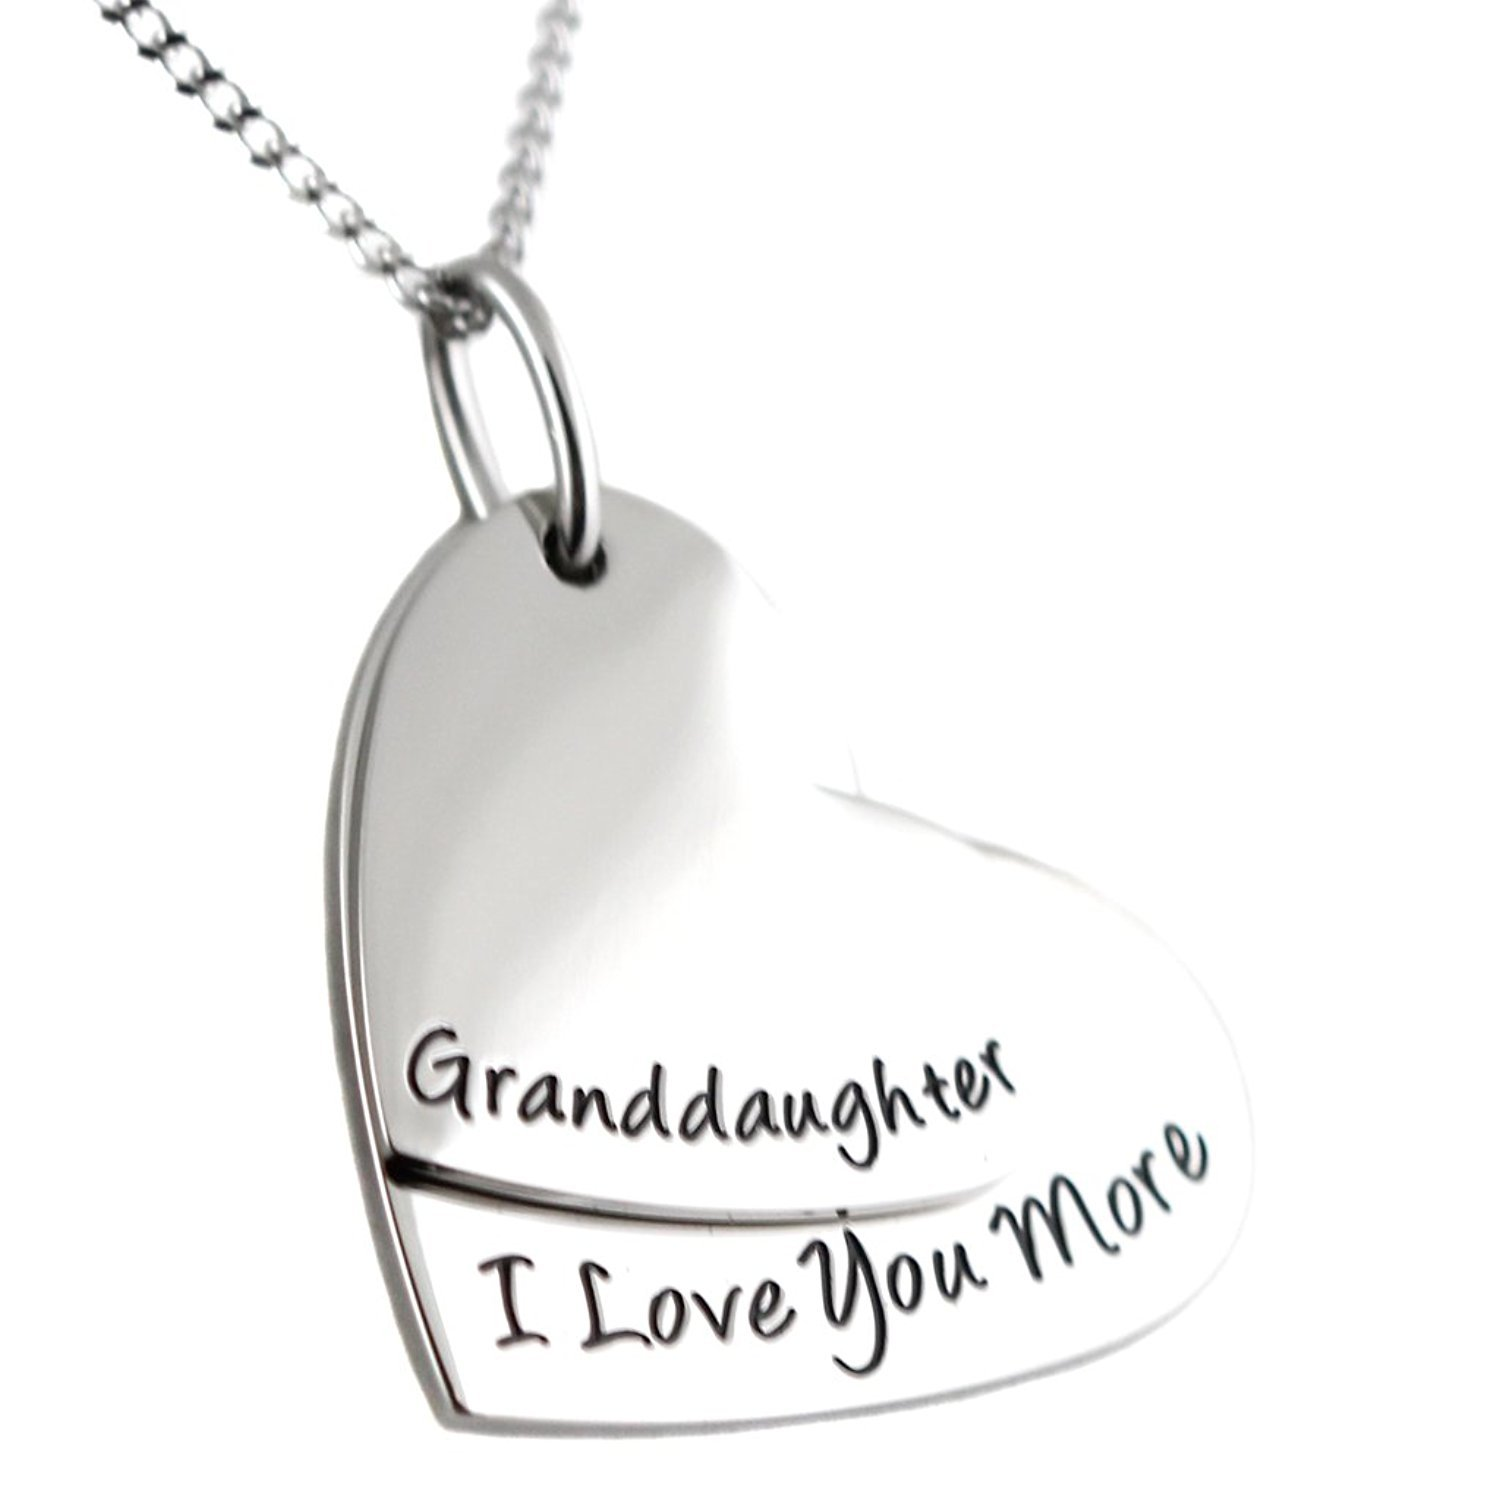 'Granddaughter, I Love You More' Pendant Necklace by Steal My Heart (Image #2)